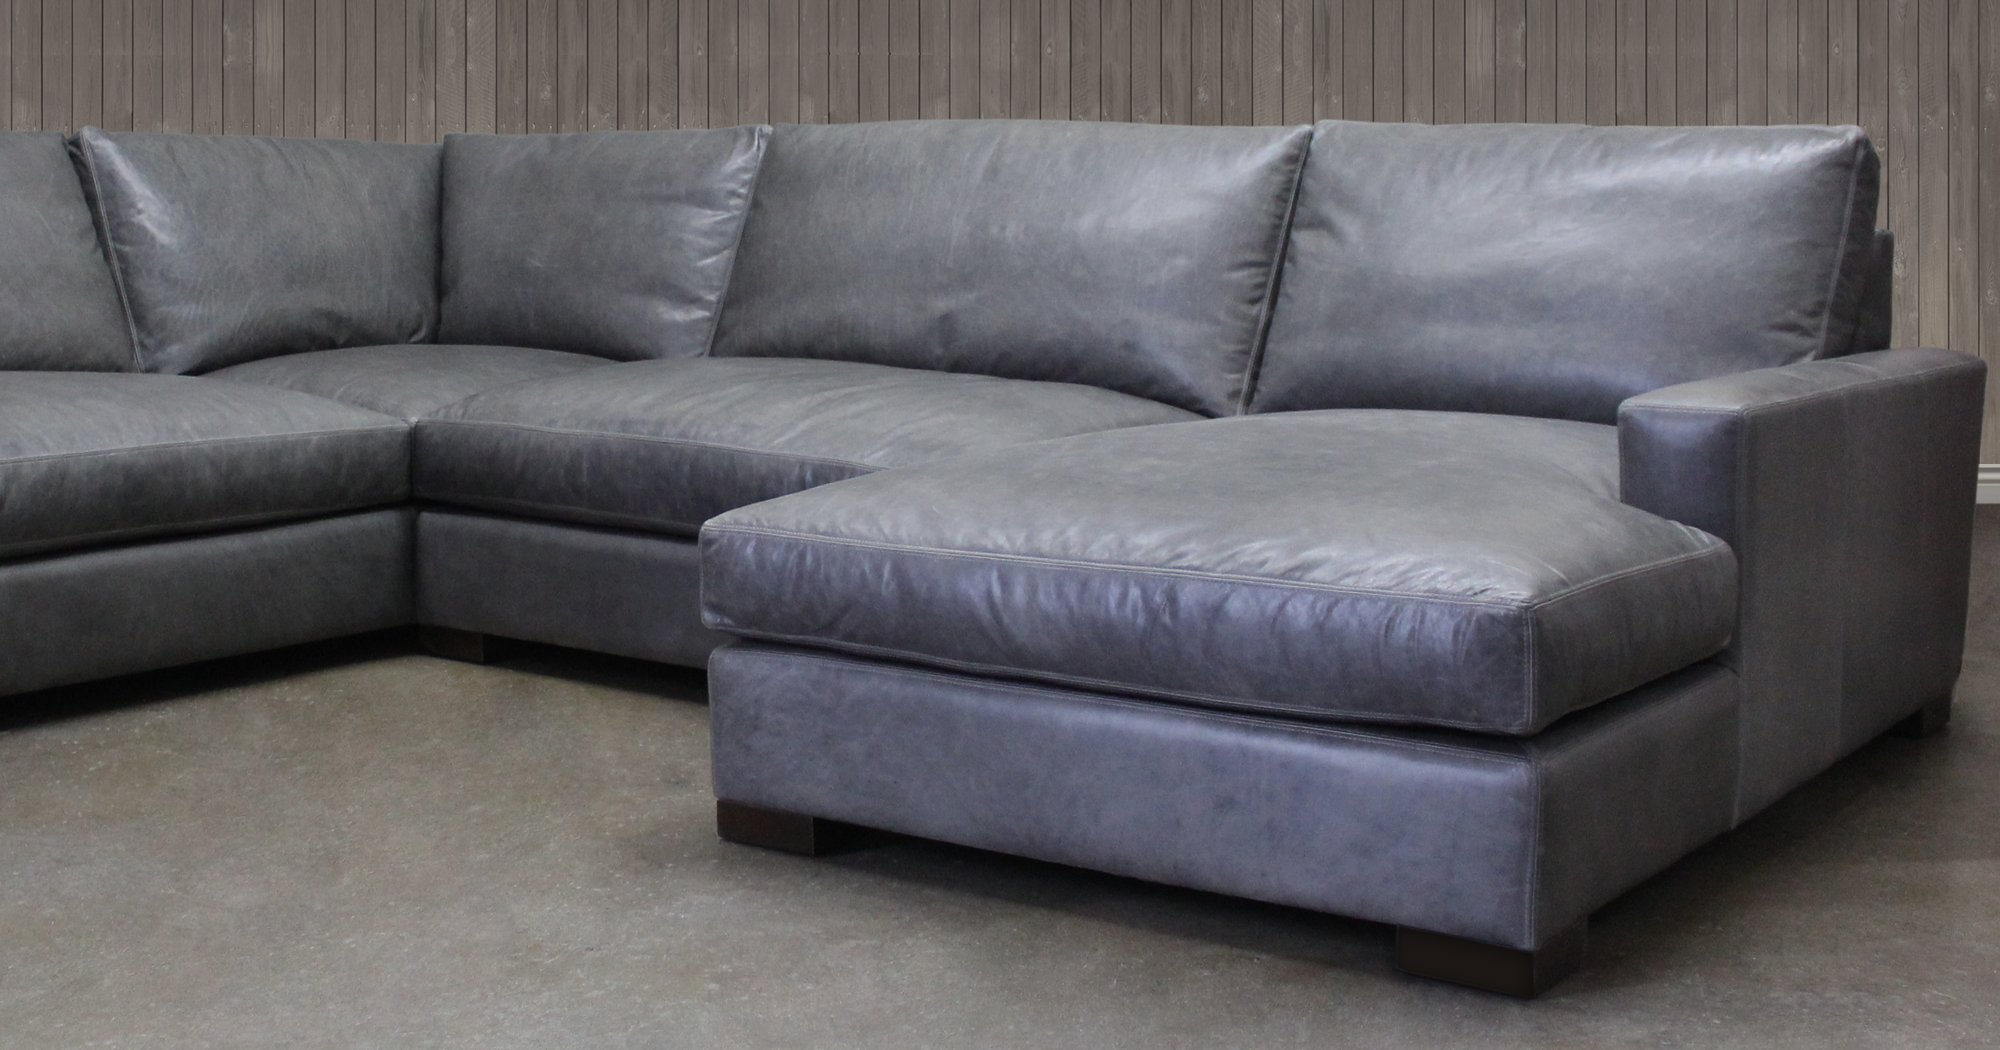 Braxton L Sectional Sofa with Chaise in Italian Berkshire Pewter Leather